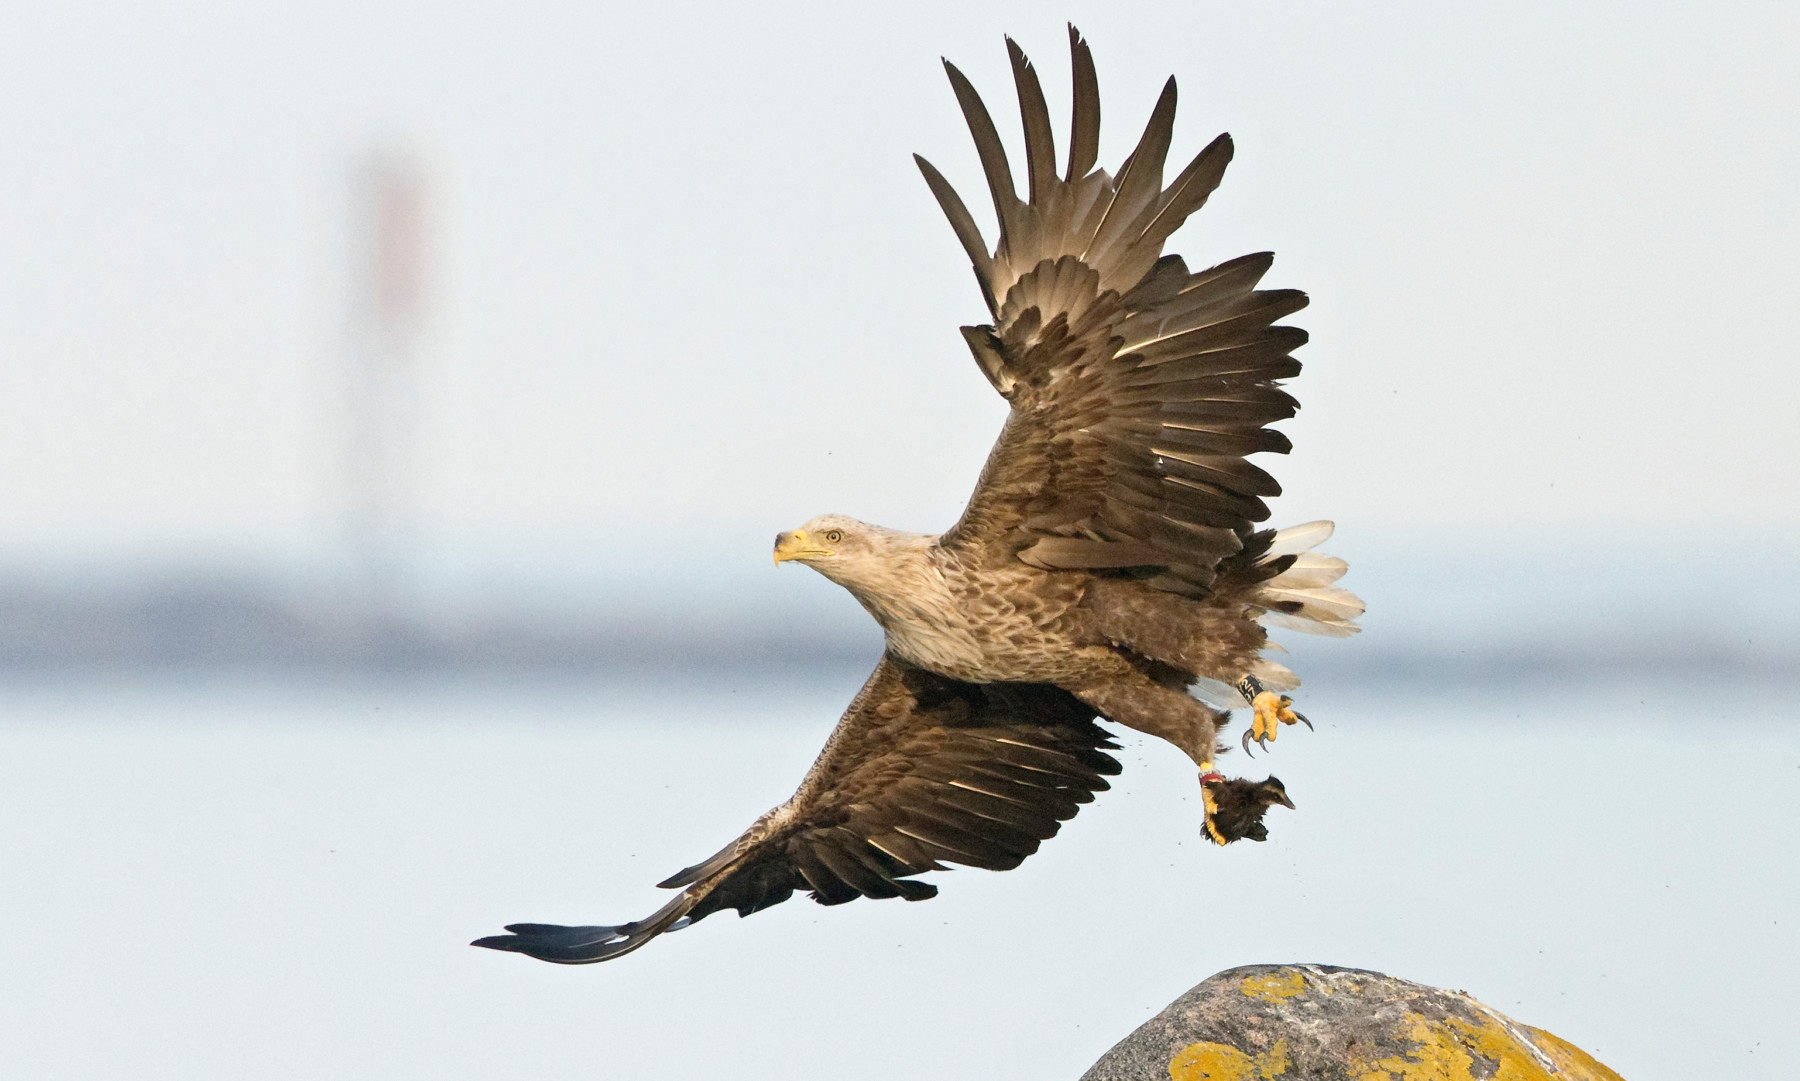 A white-tailed eagle is shown in flight, with wings fully spread.